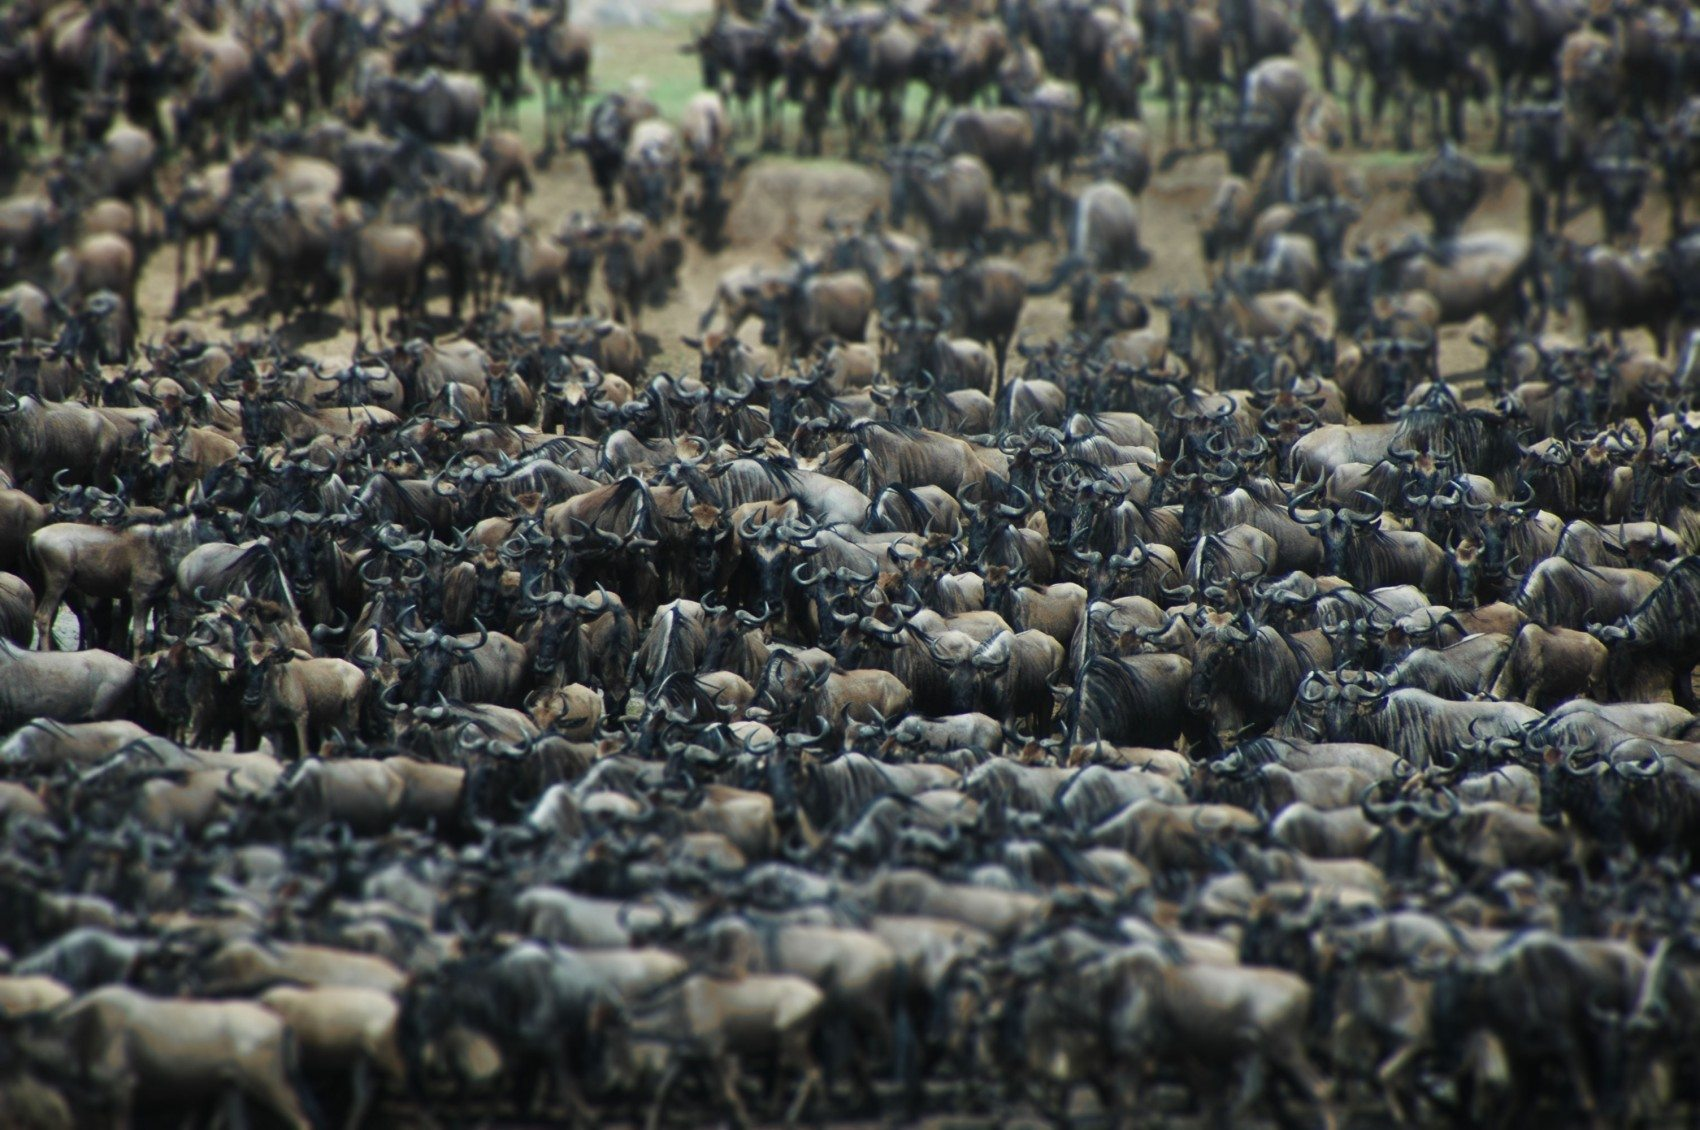 Getting the Most out of Africa's Great Wildebeest Migration